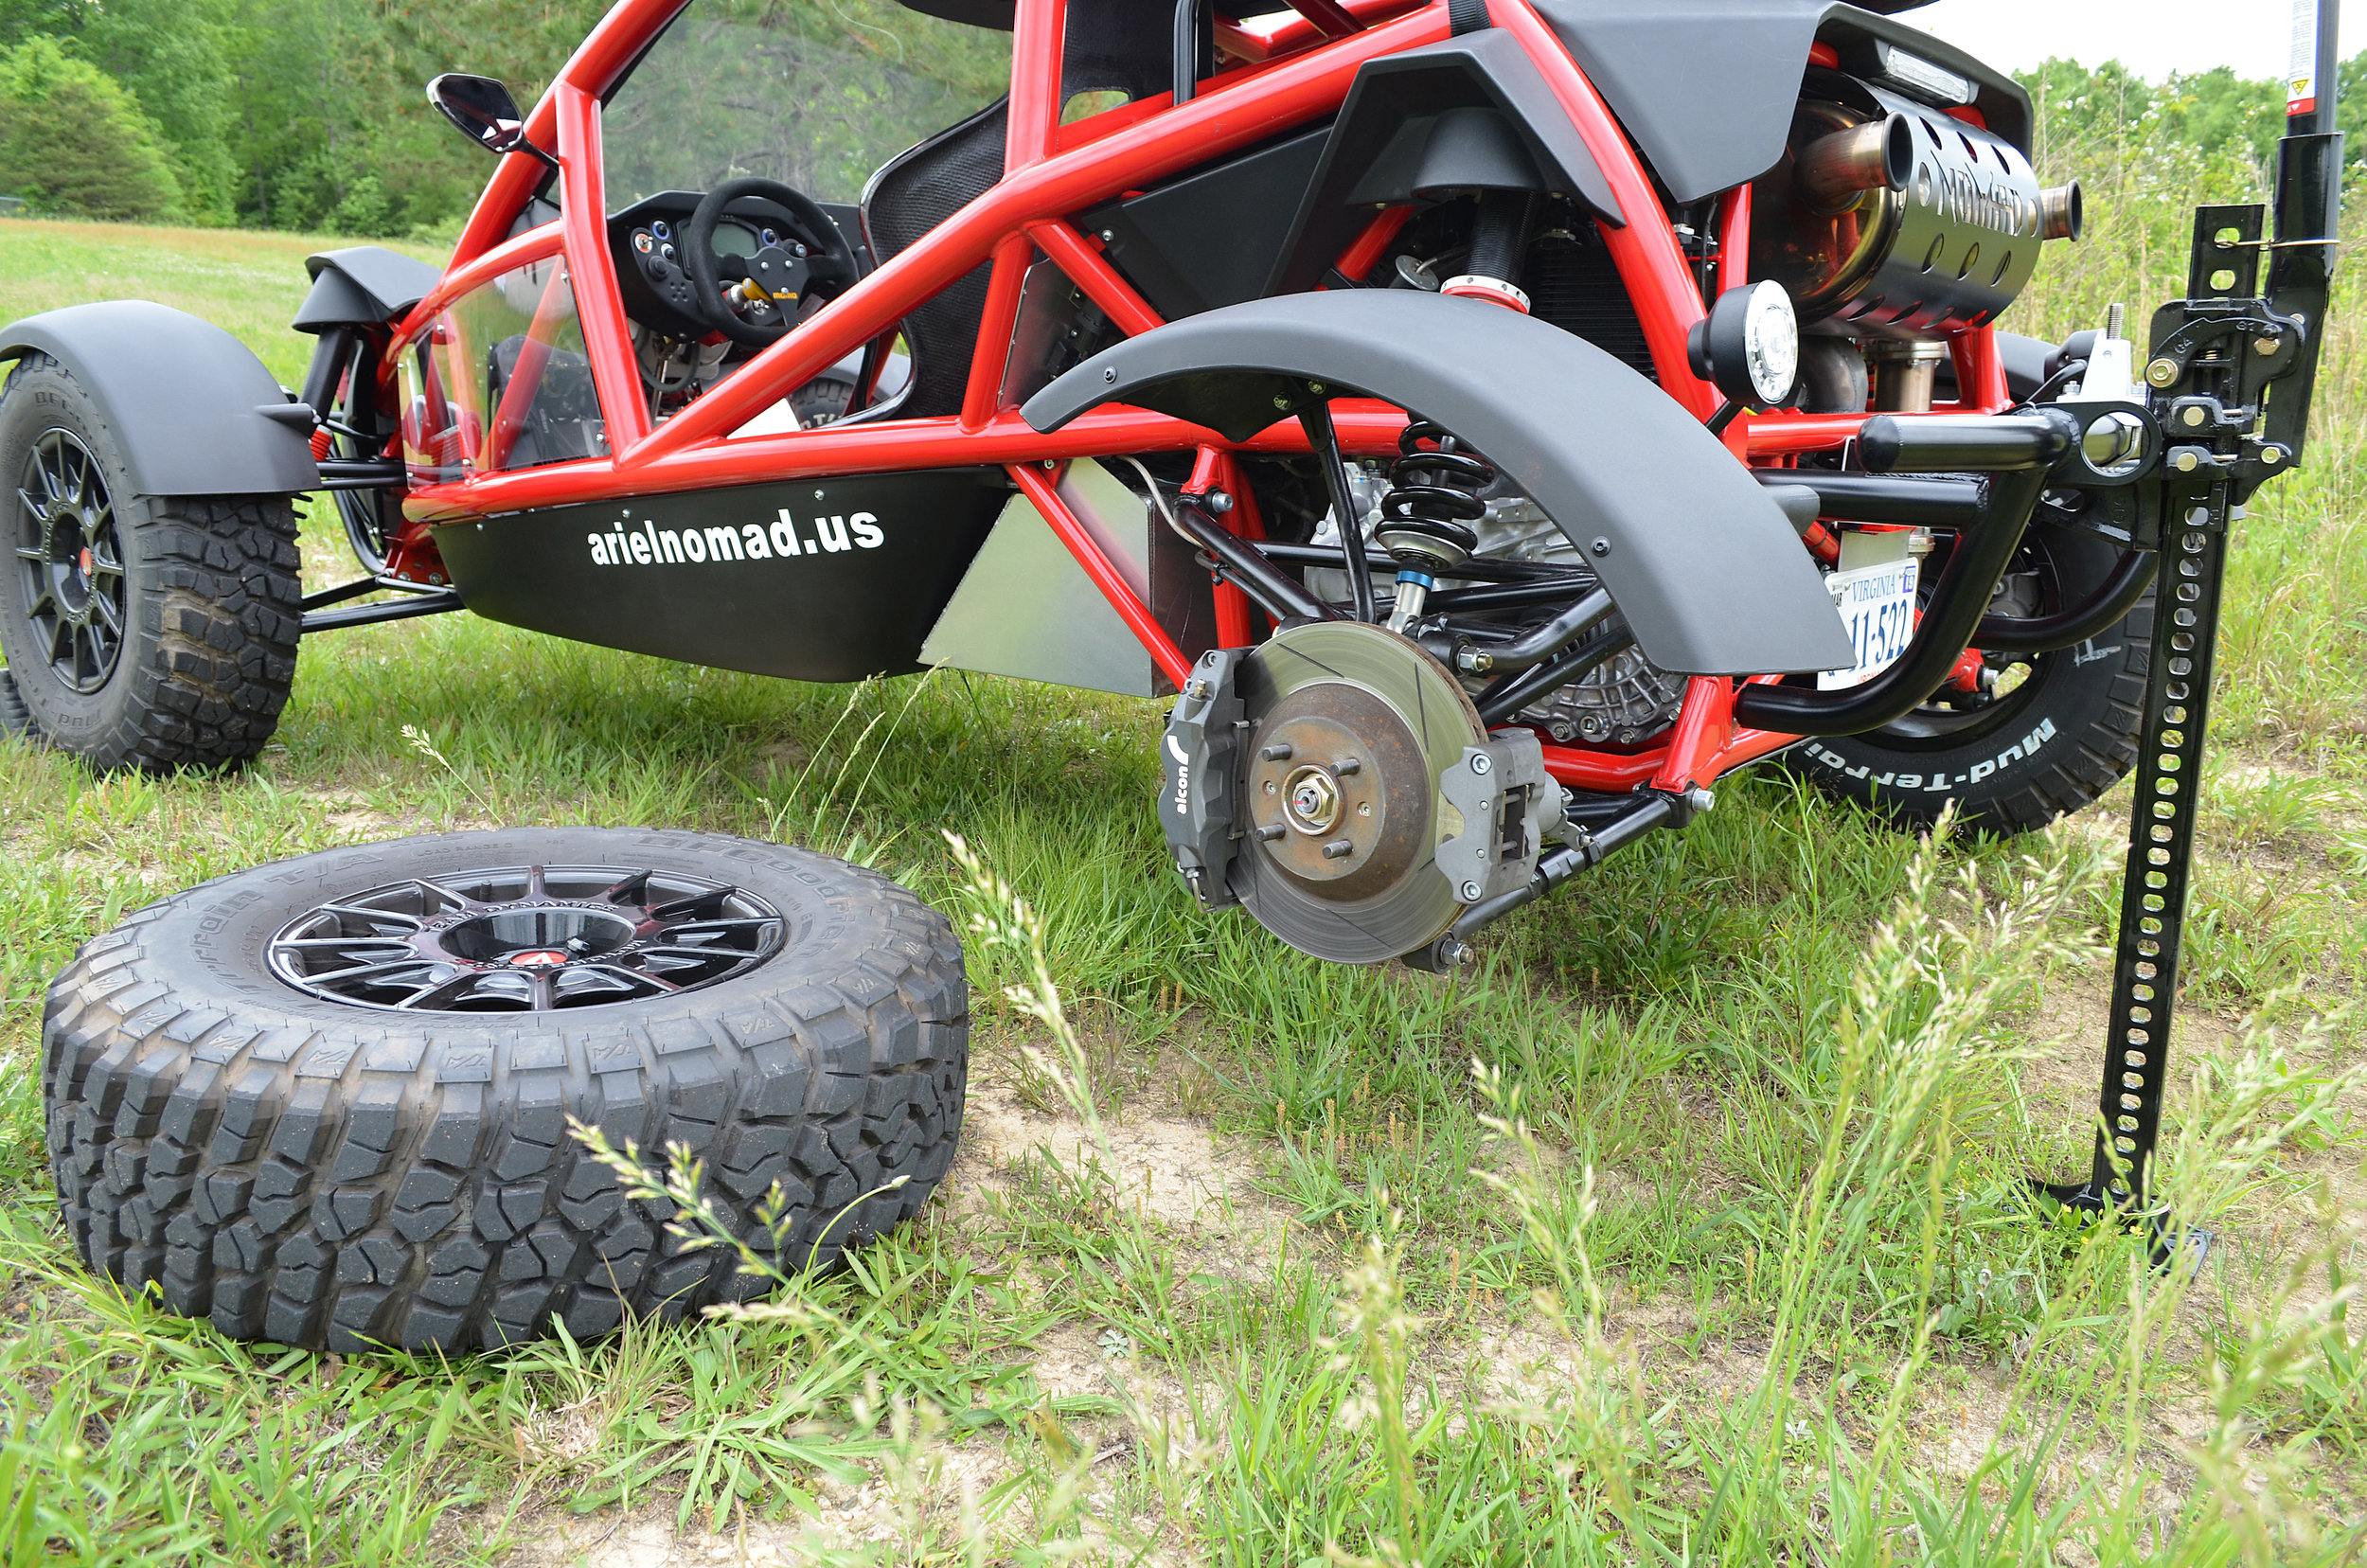 4: Perform repair and reverse instructions to get back to having fun with your Ariel Nomad.